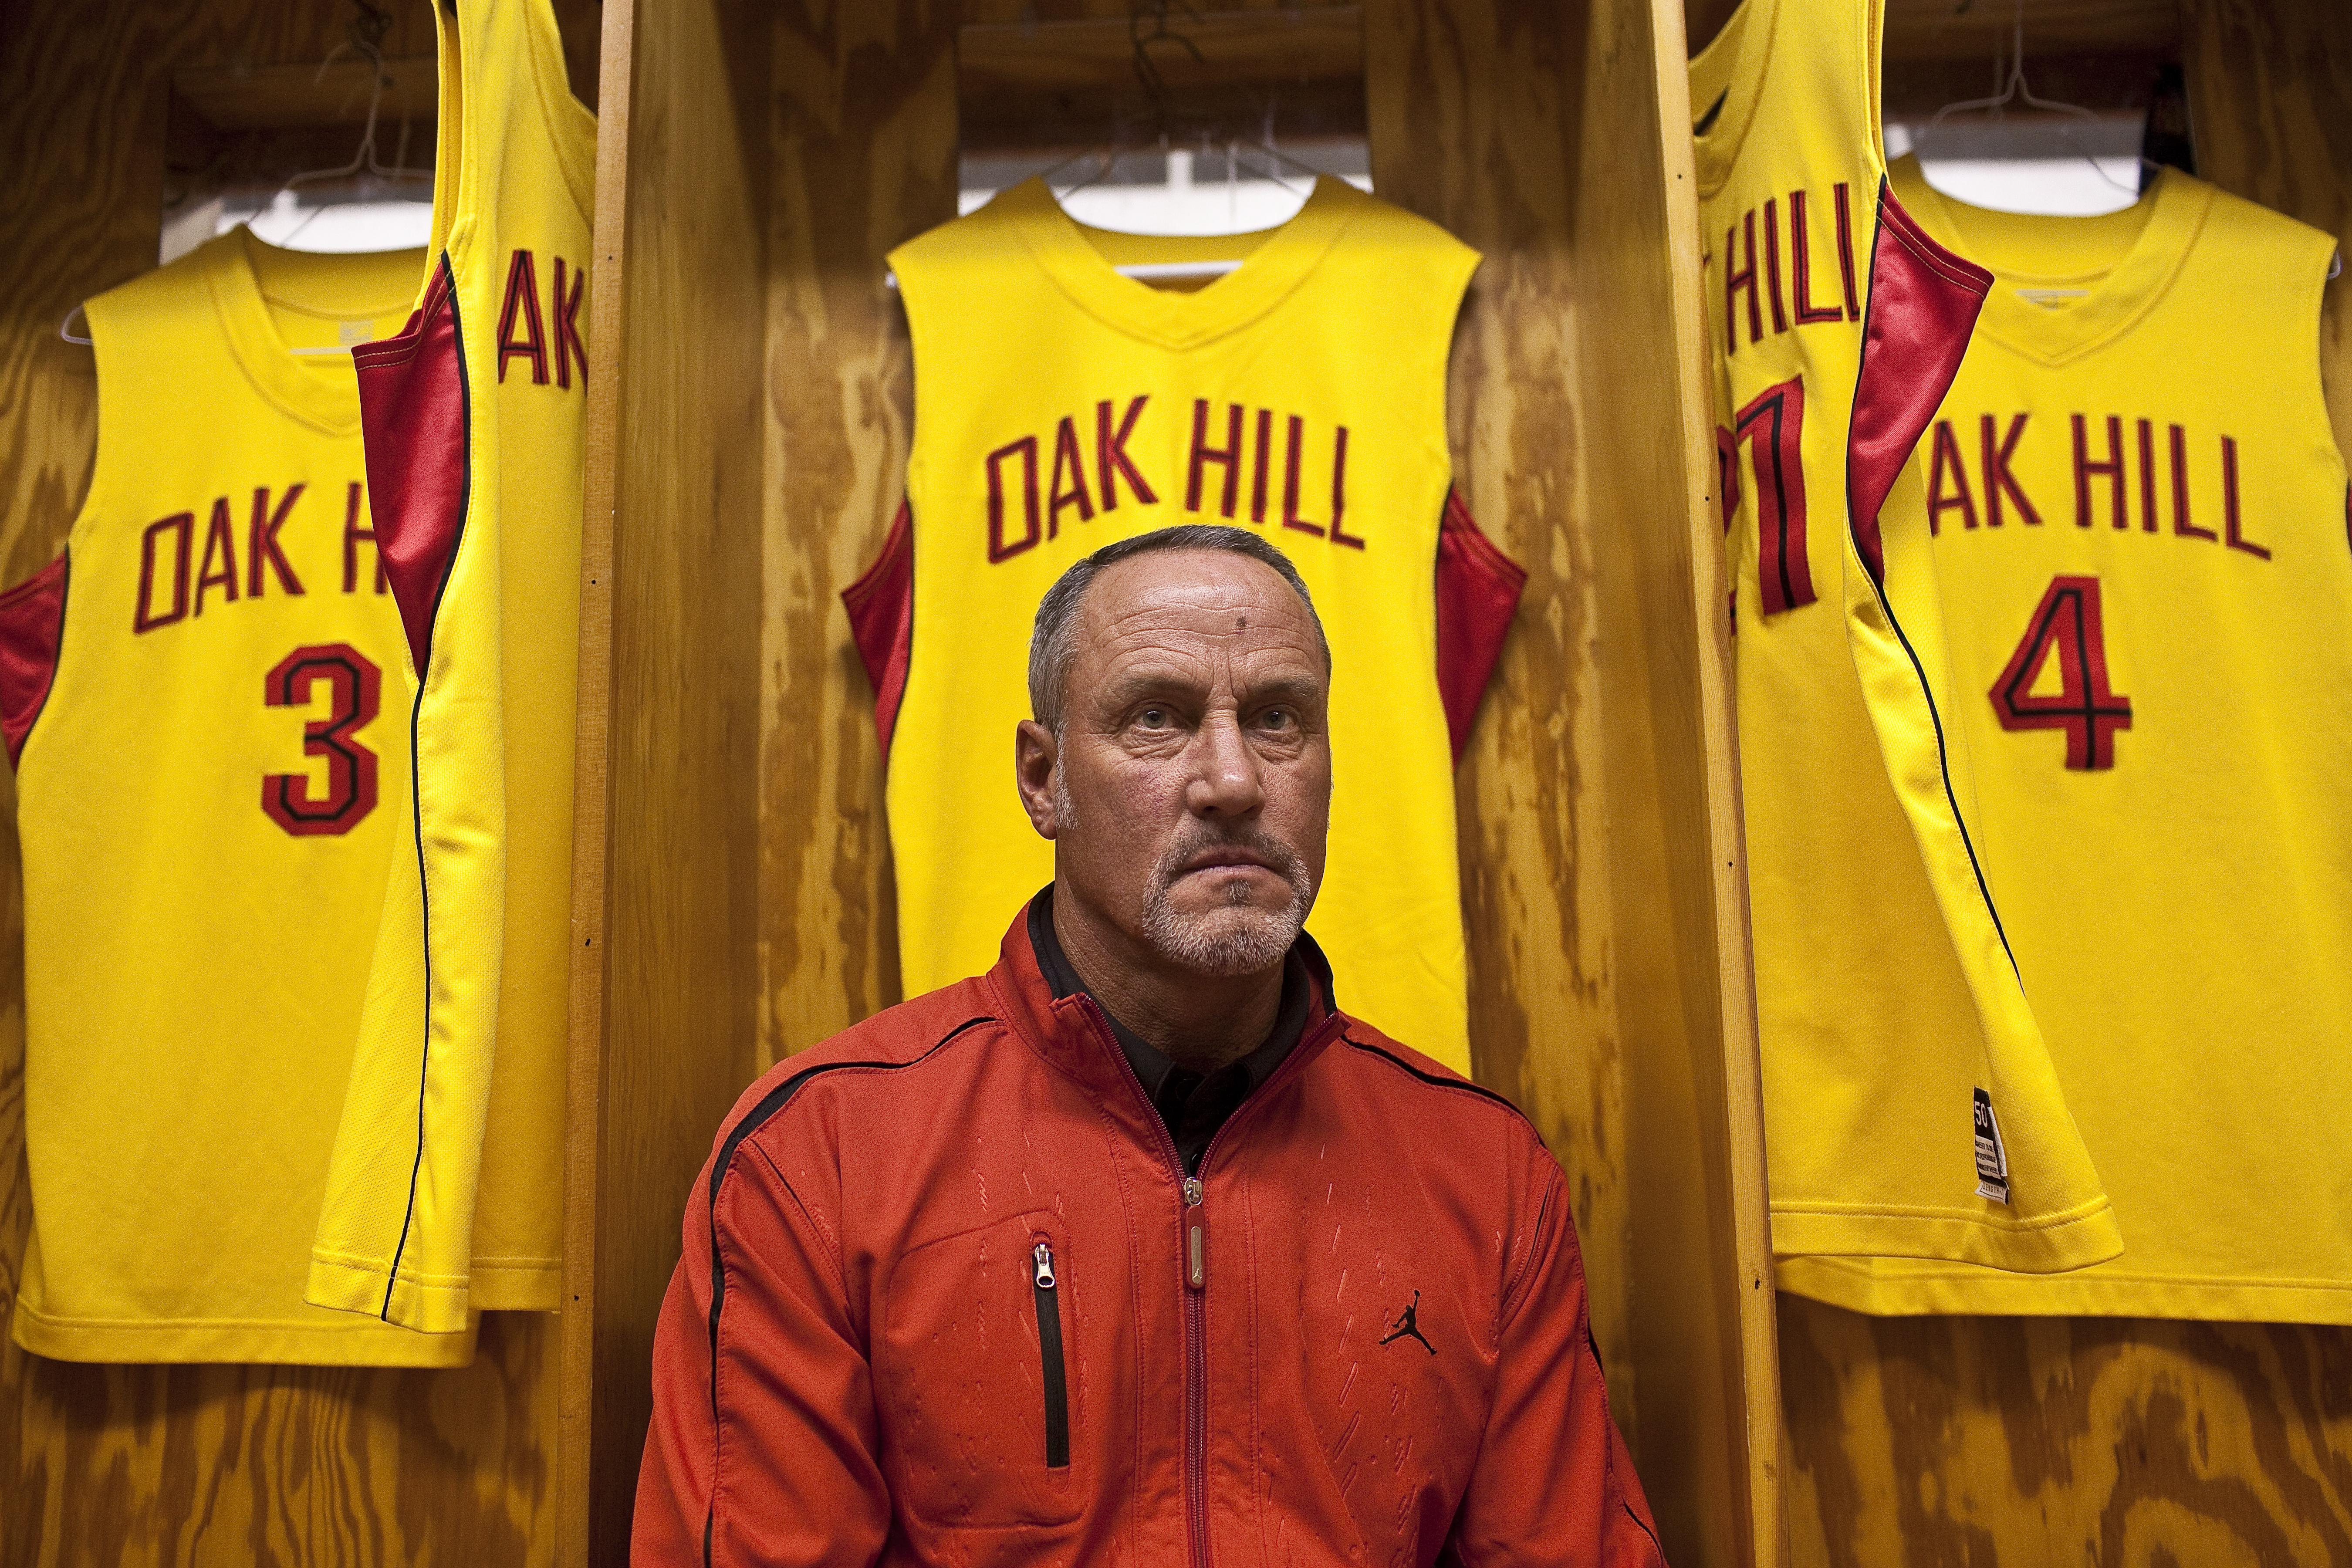 Oak Hill coach Steve Smith has eclipsed 1,000wins. (Photo: Jared Soares, For USA TODAY Sports)